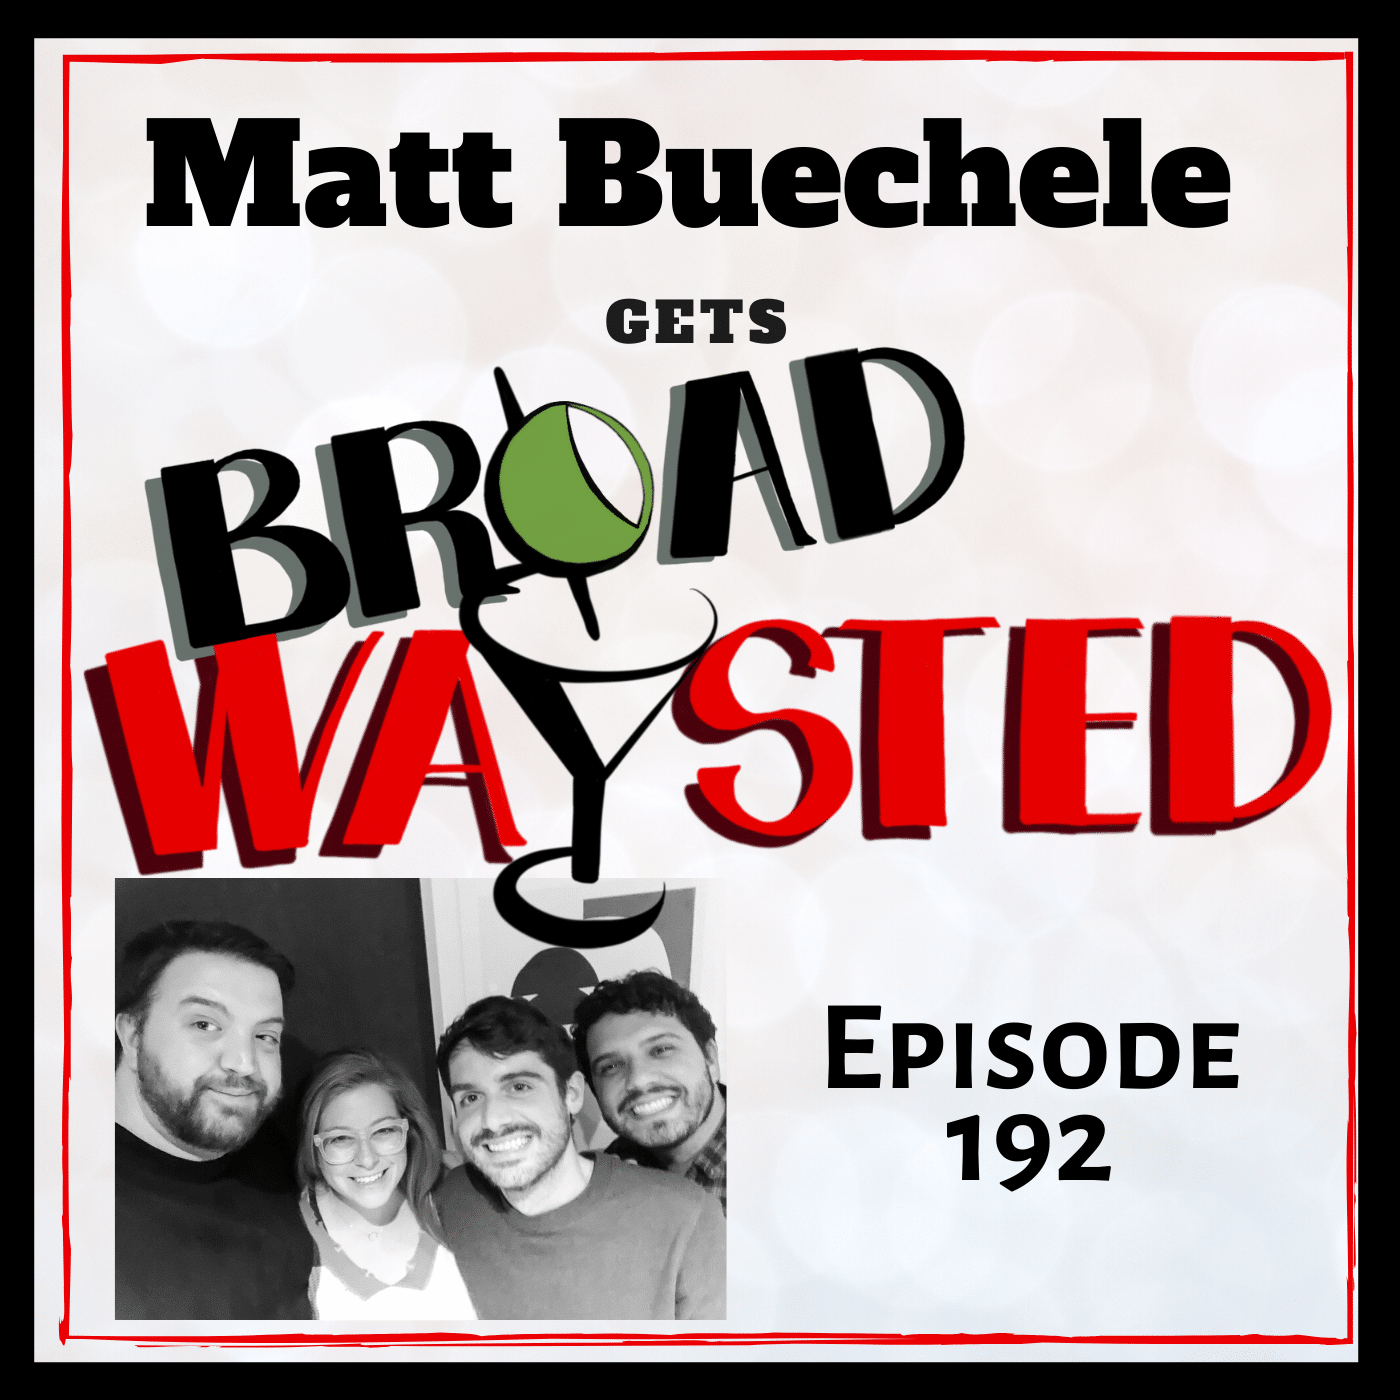 Broadwaysted Ep192